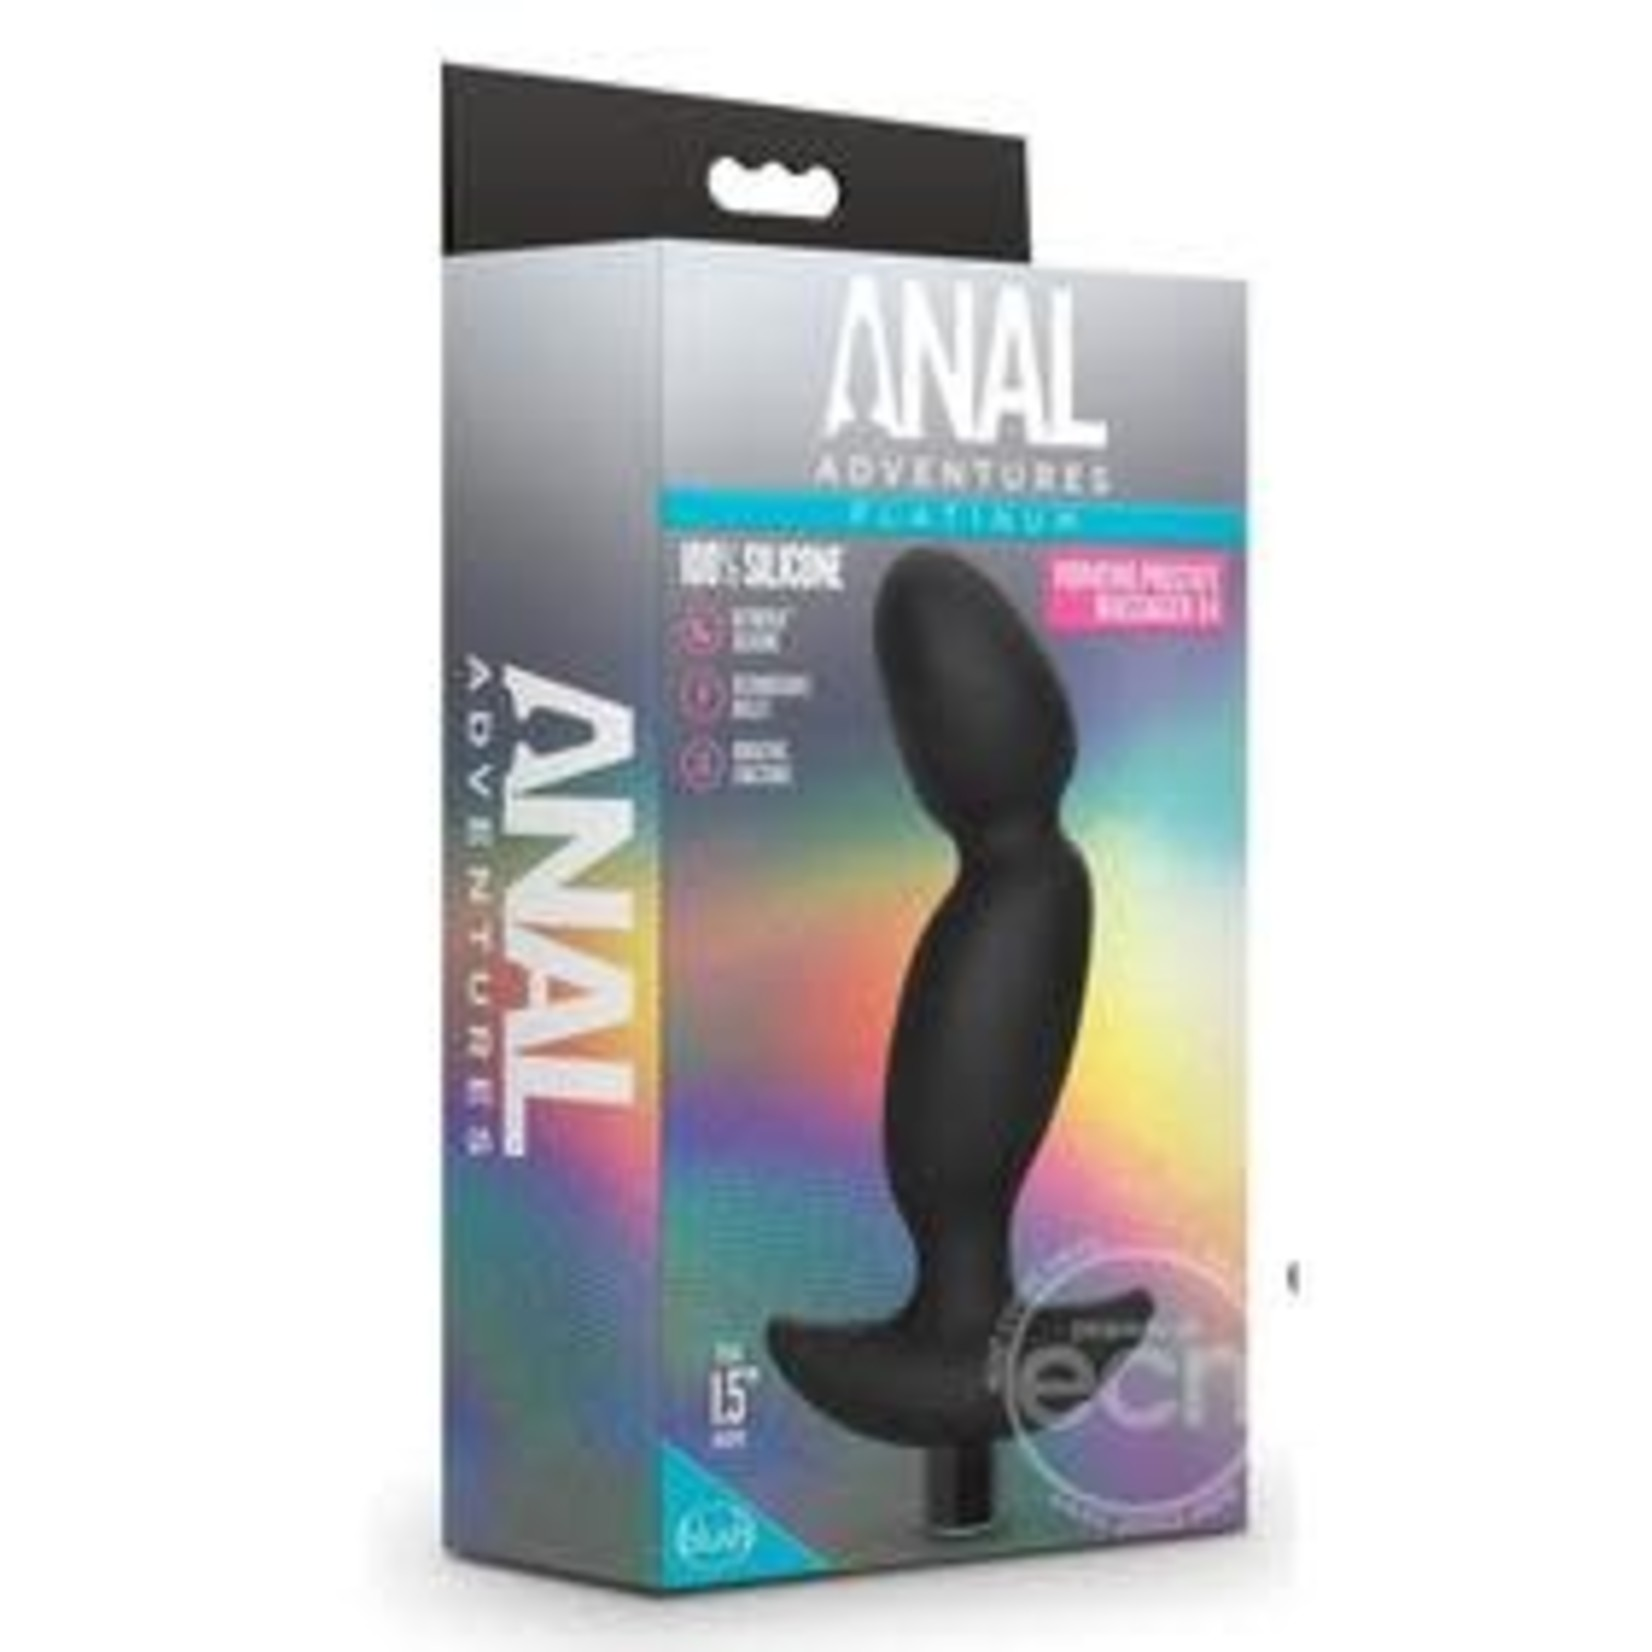 Anal Adventures Platinum Silicone Rechargeable Vibrating Prostate Massager 04 - Black